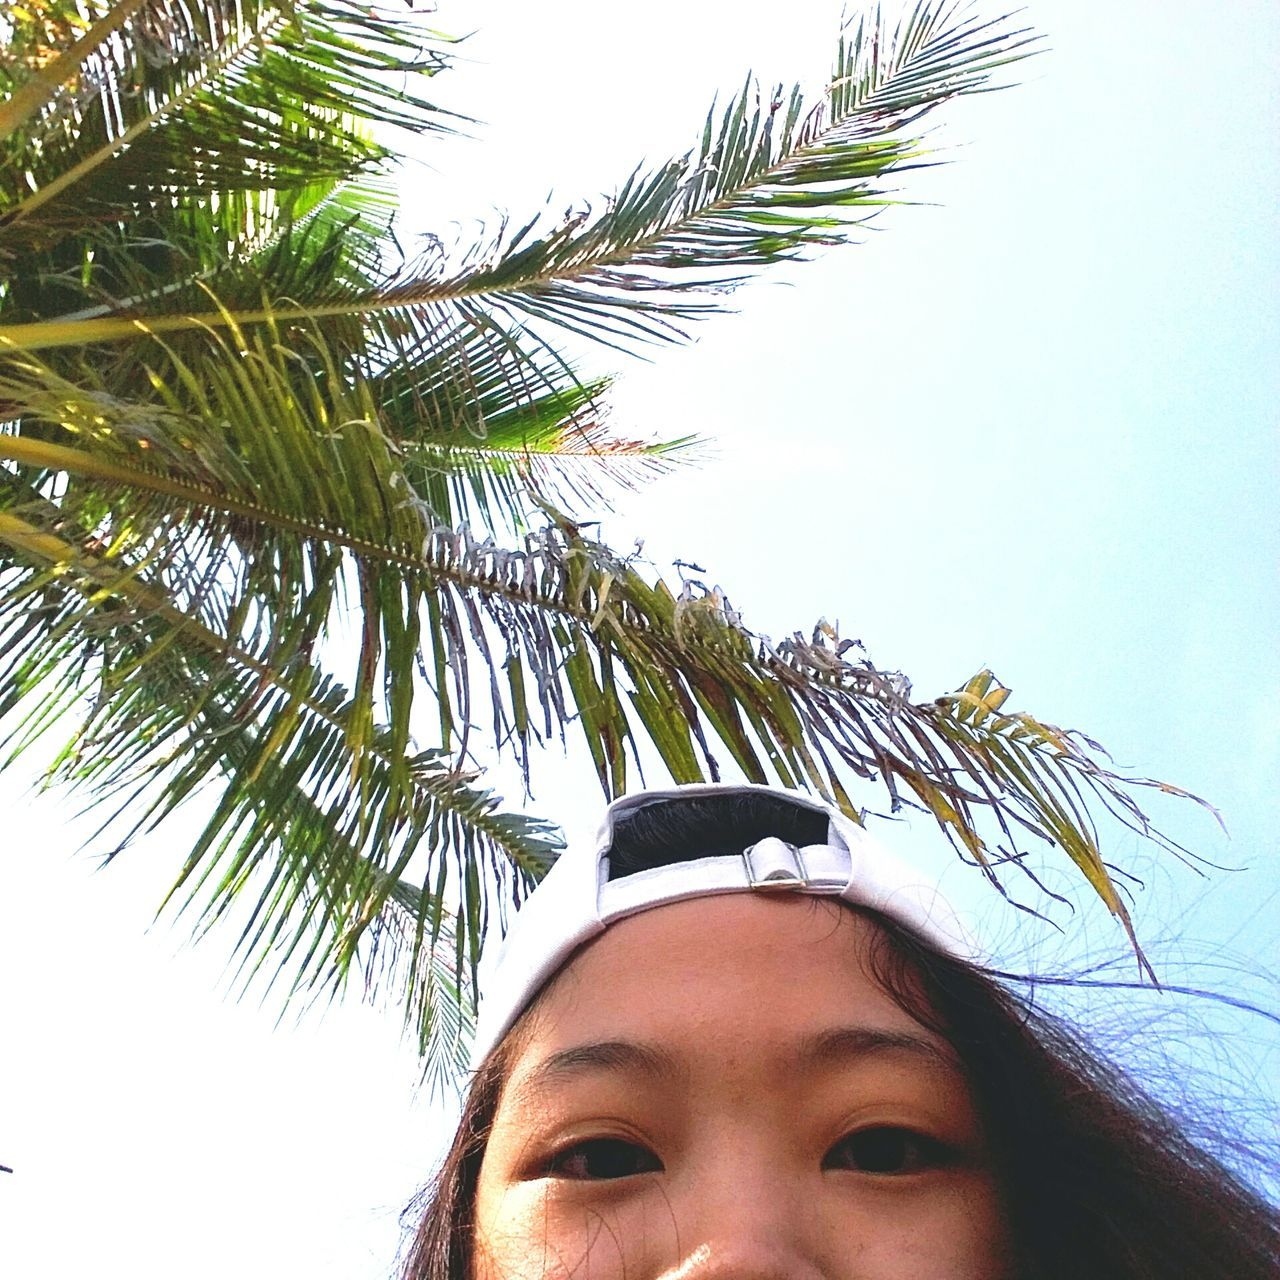 No caption needed EyeEmBestPics Loveit❤ Hanging Out Haha Hello World Picture Of The Day Hi! Check This Out Baseballcap Enjoying Life Relaxing Beach Cheese! Frommypointofview Taking Photos Justtakingpictures Likeit Selfie ✌ That's Me EyeEm Best Edits Qualitytime Relaxing Time